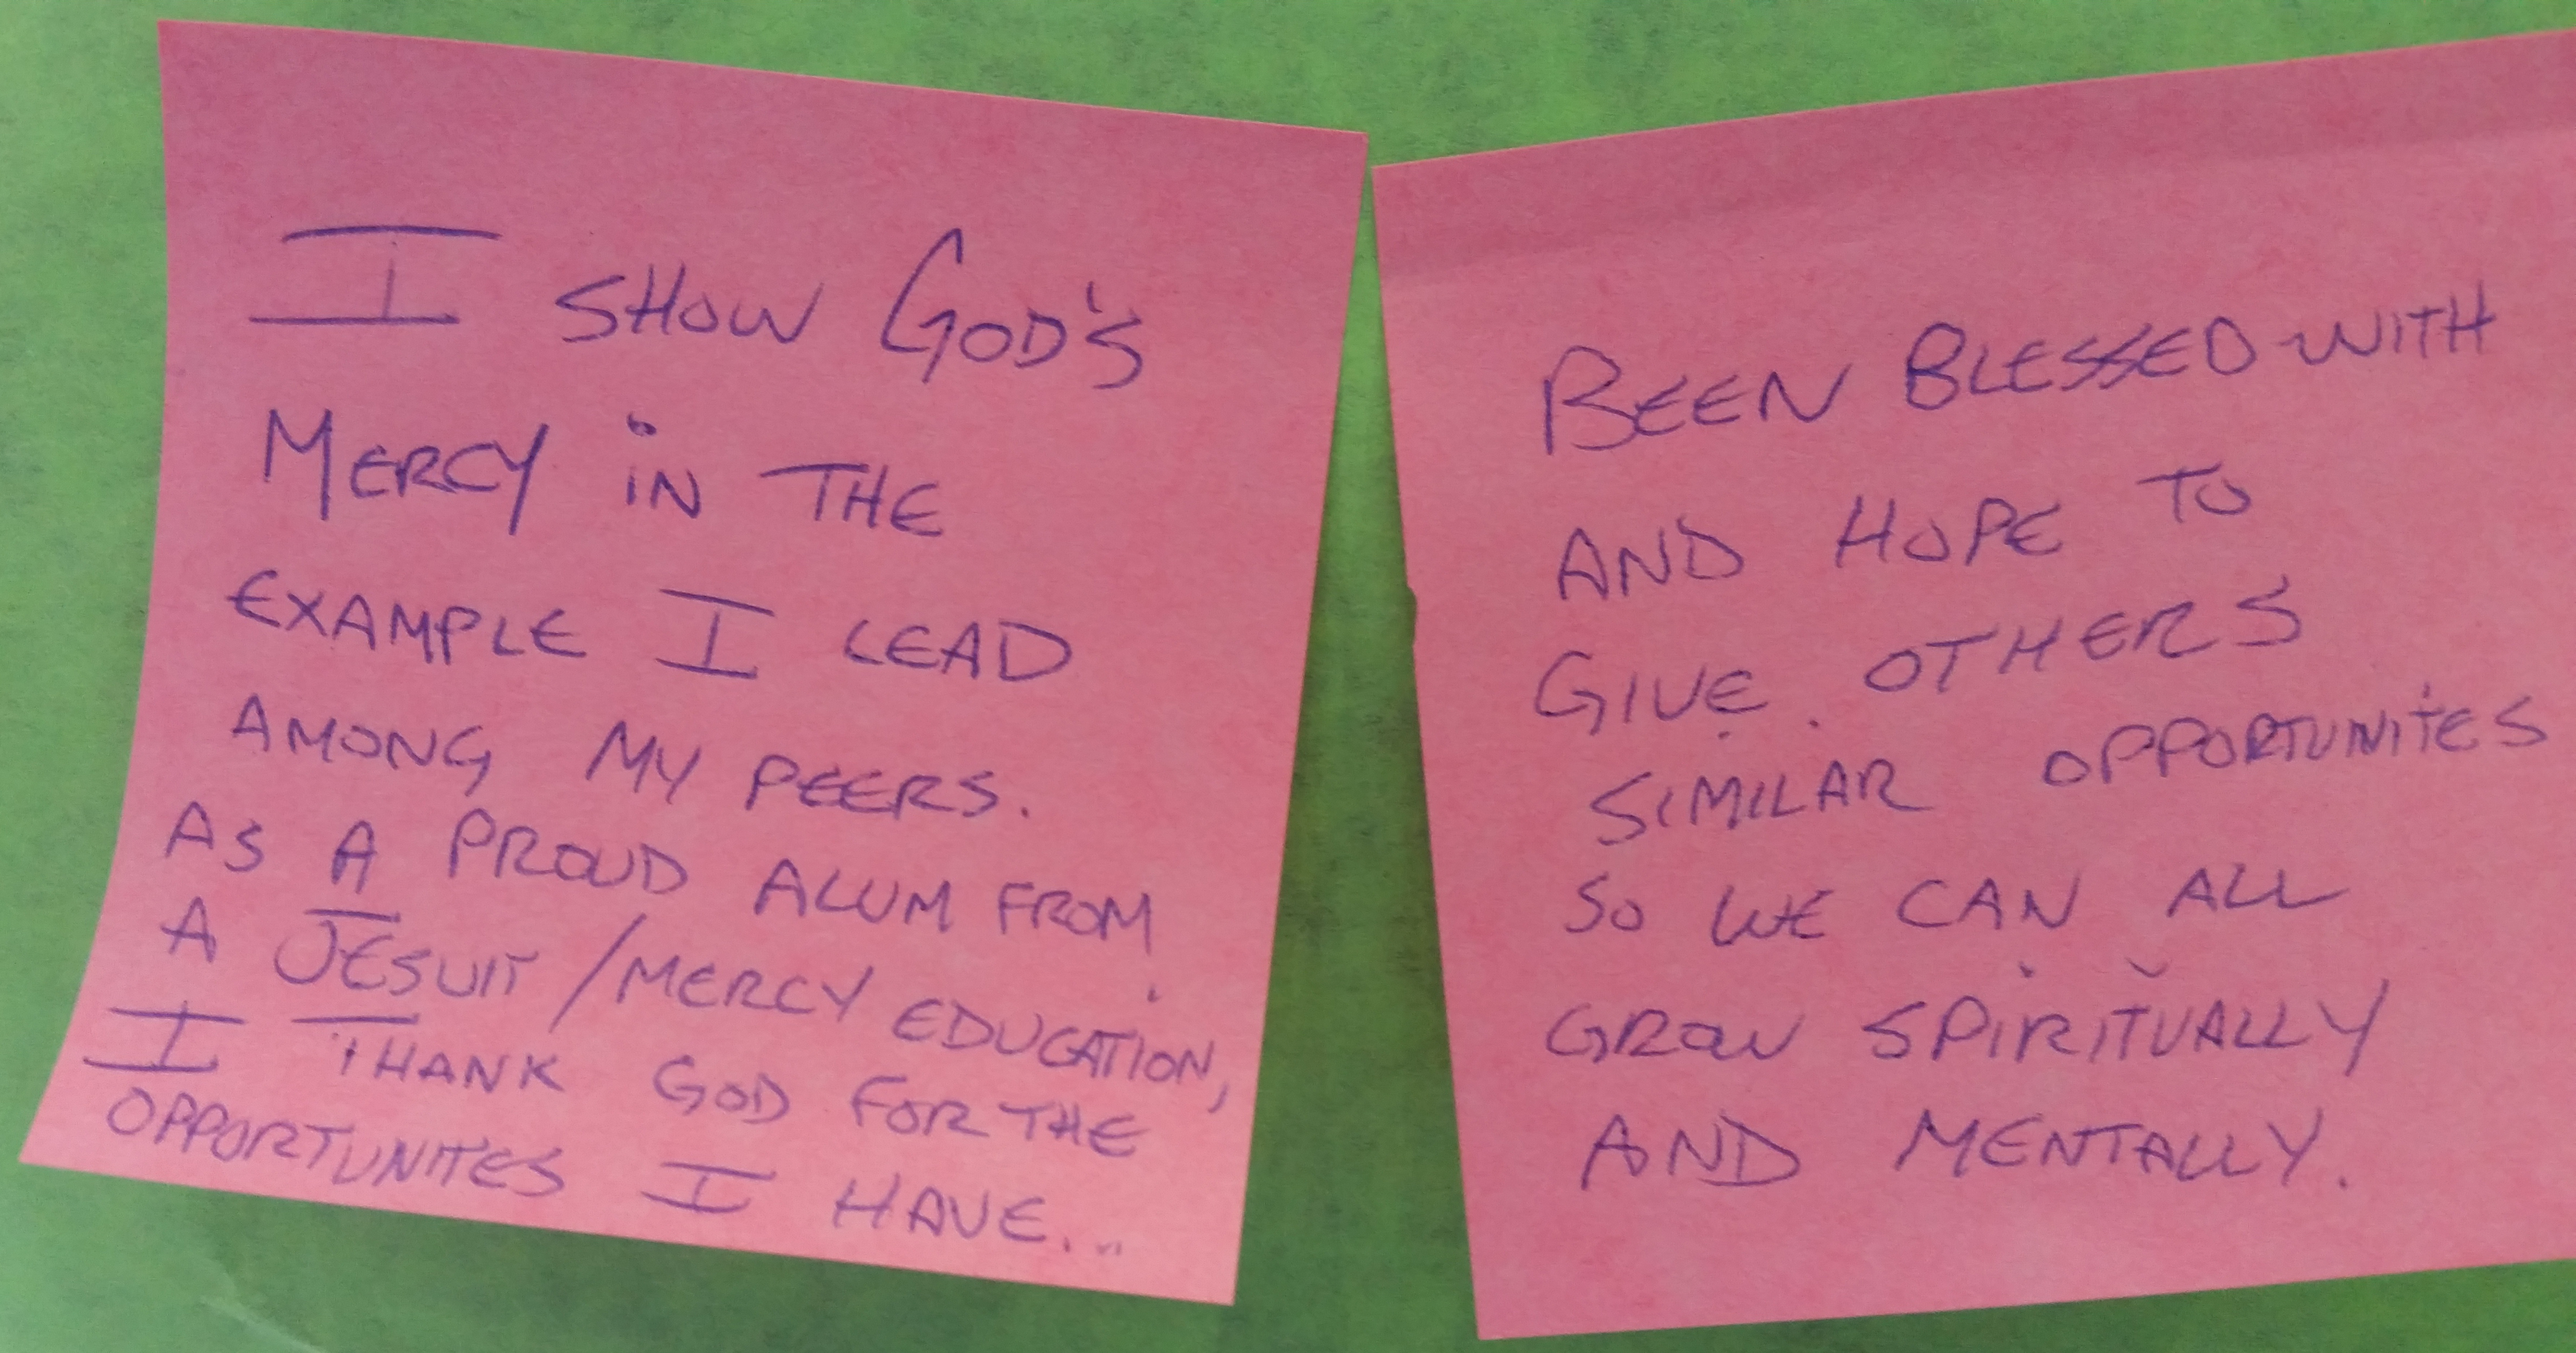 Students, alumni, faculty and staff posted ways they give and receive Mercy on boards around the McNichols Campus.